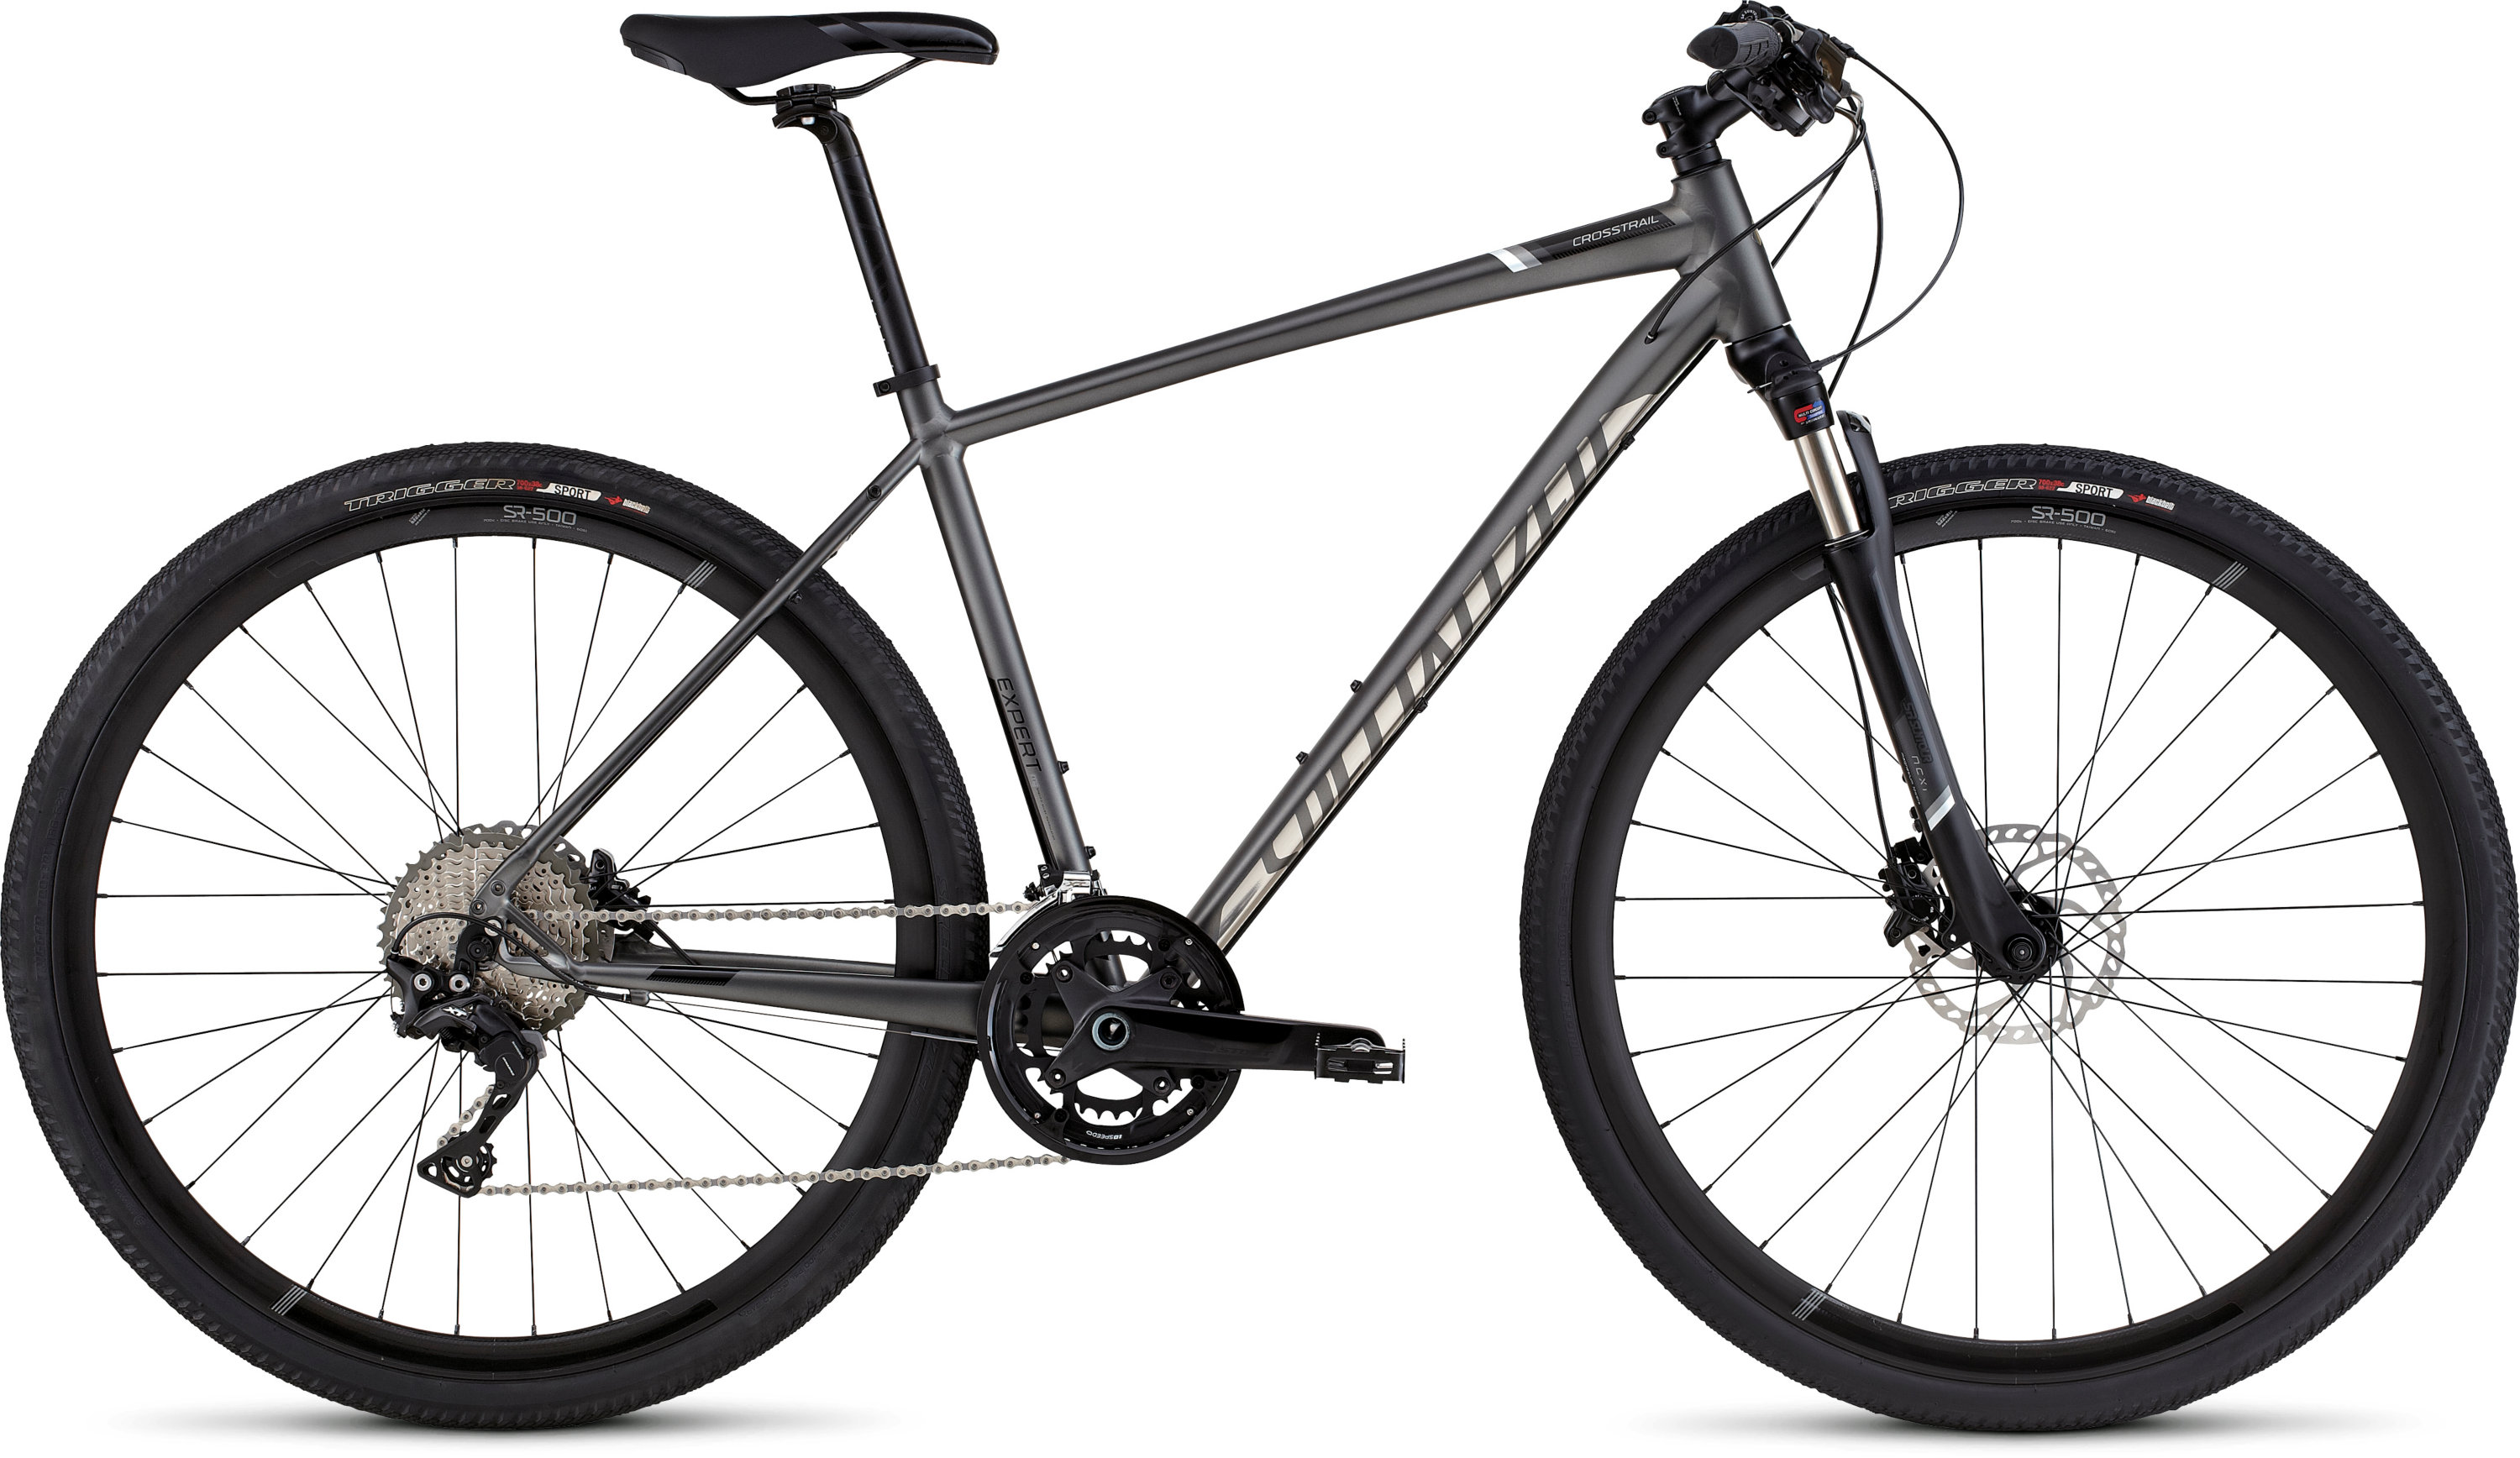 SPECIALIZED CT EXPERT DISC BLKCP/BLK/CHRM M - Alpha Bikes